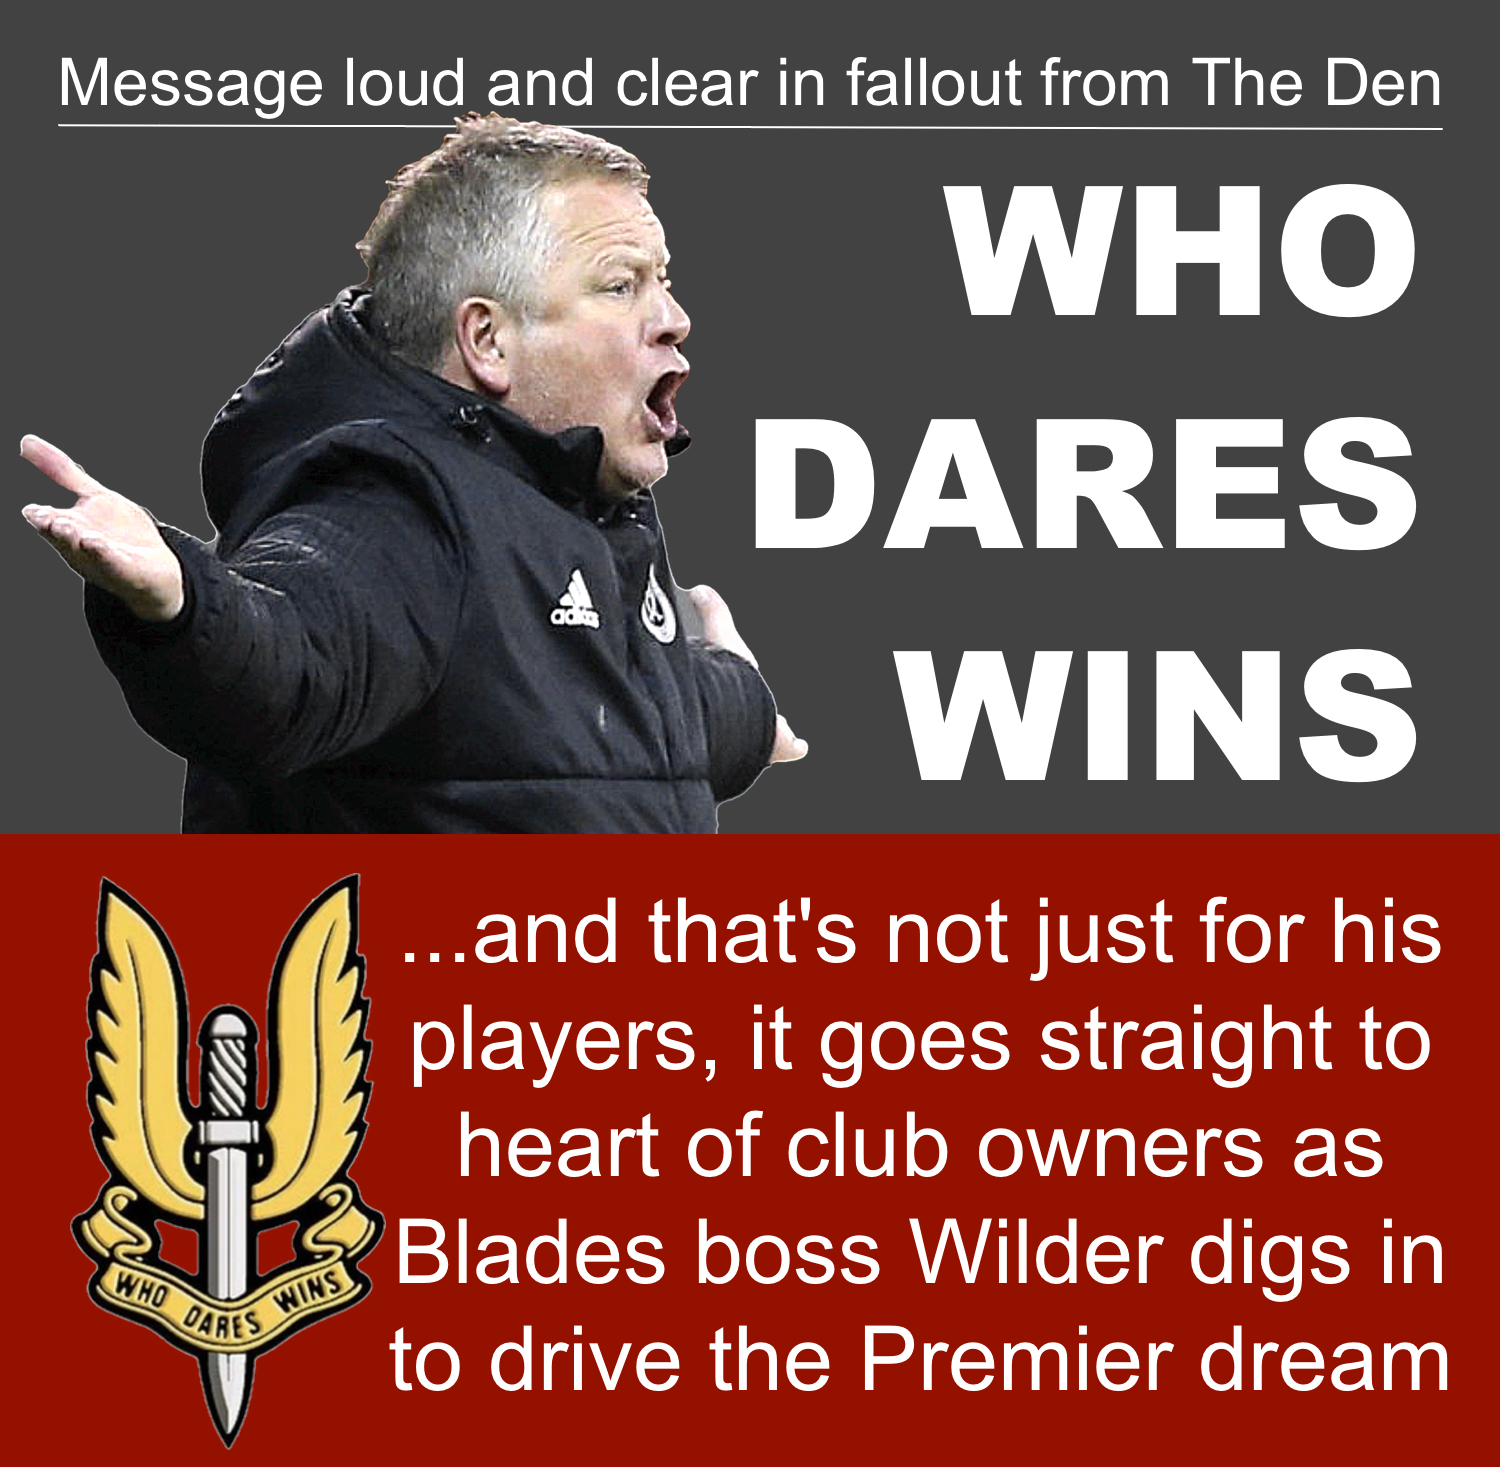 Furious Sheffield United boss Chris Wilder driving Blades Premier dream in fallout from latest crash at The Den